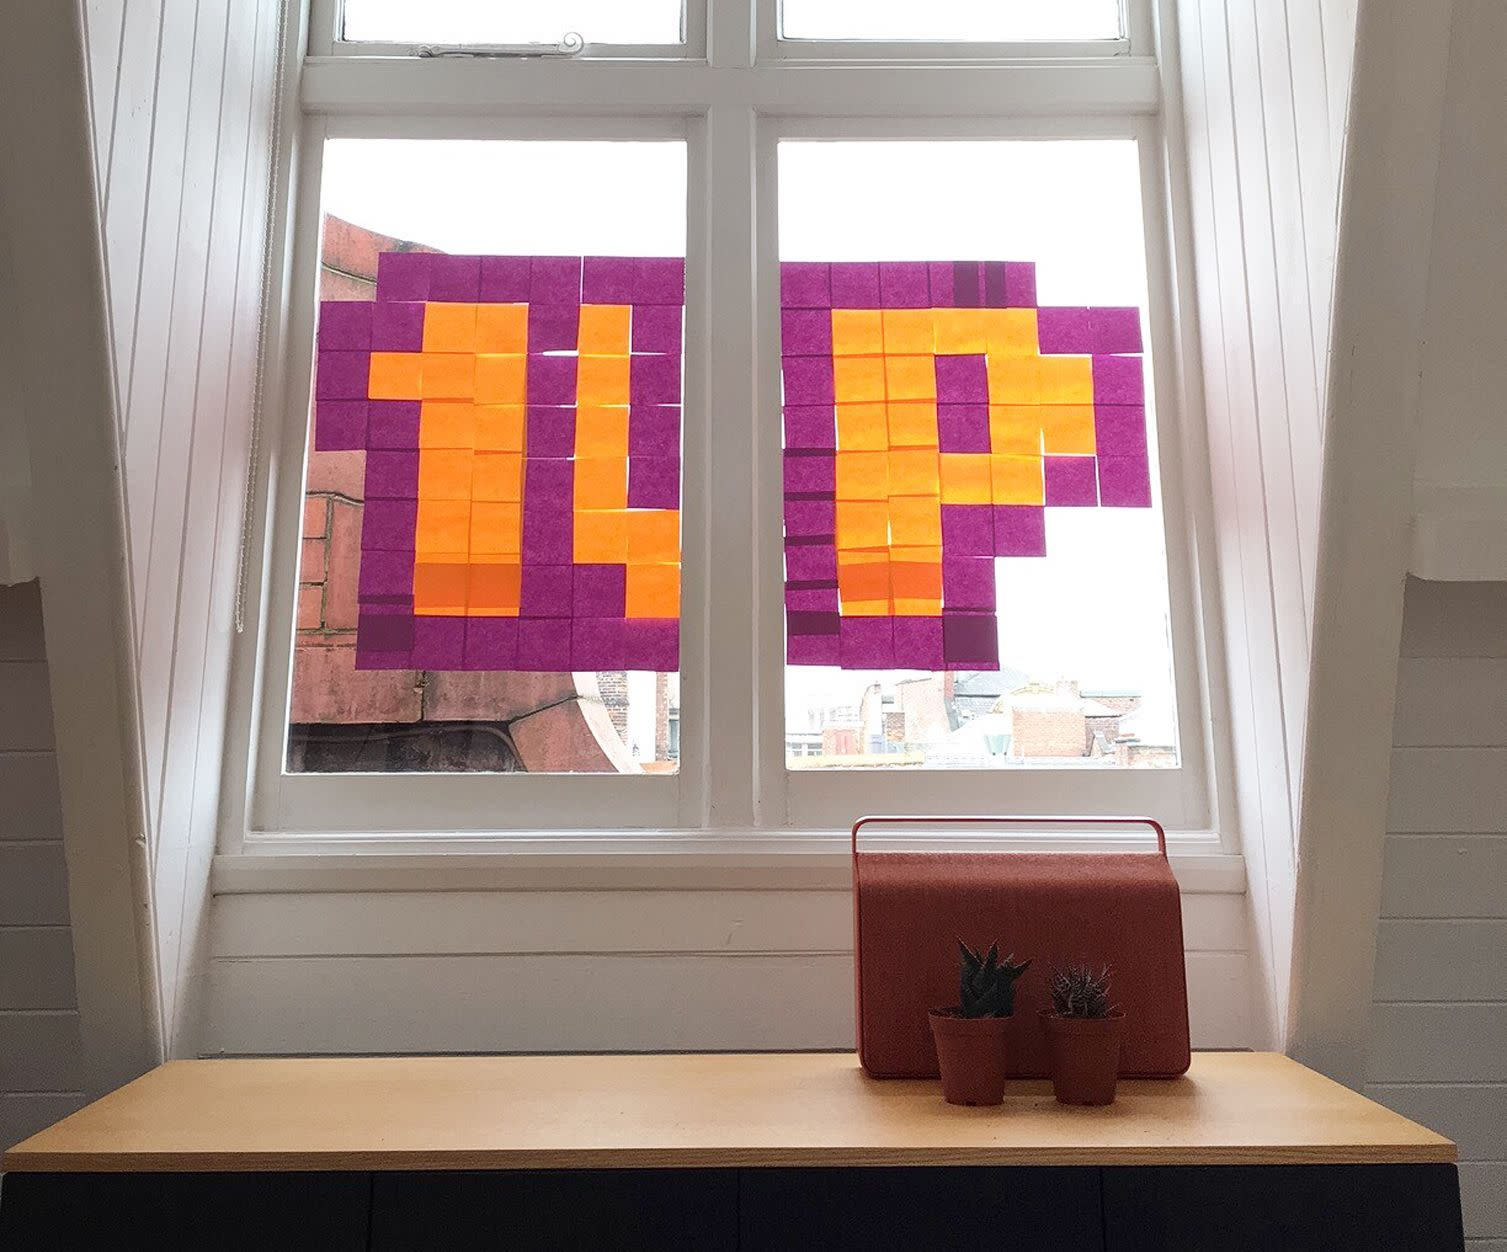 1up compressed